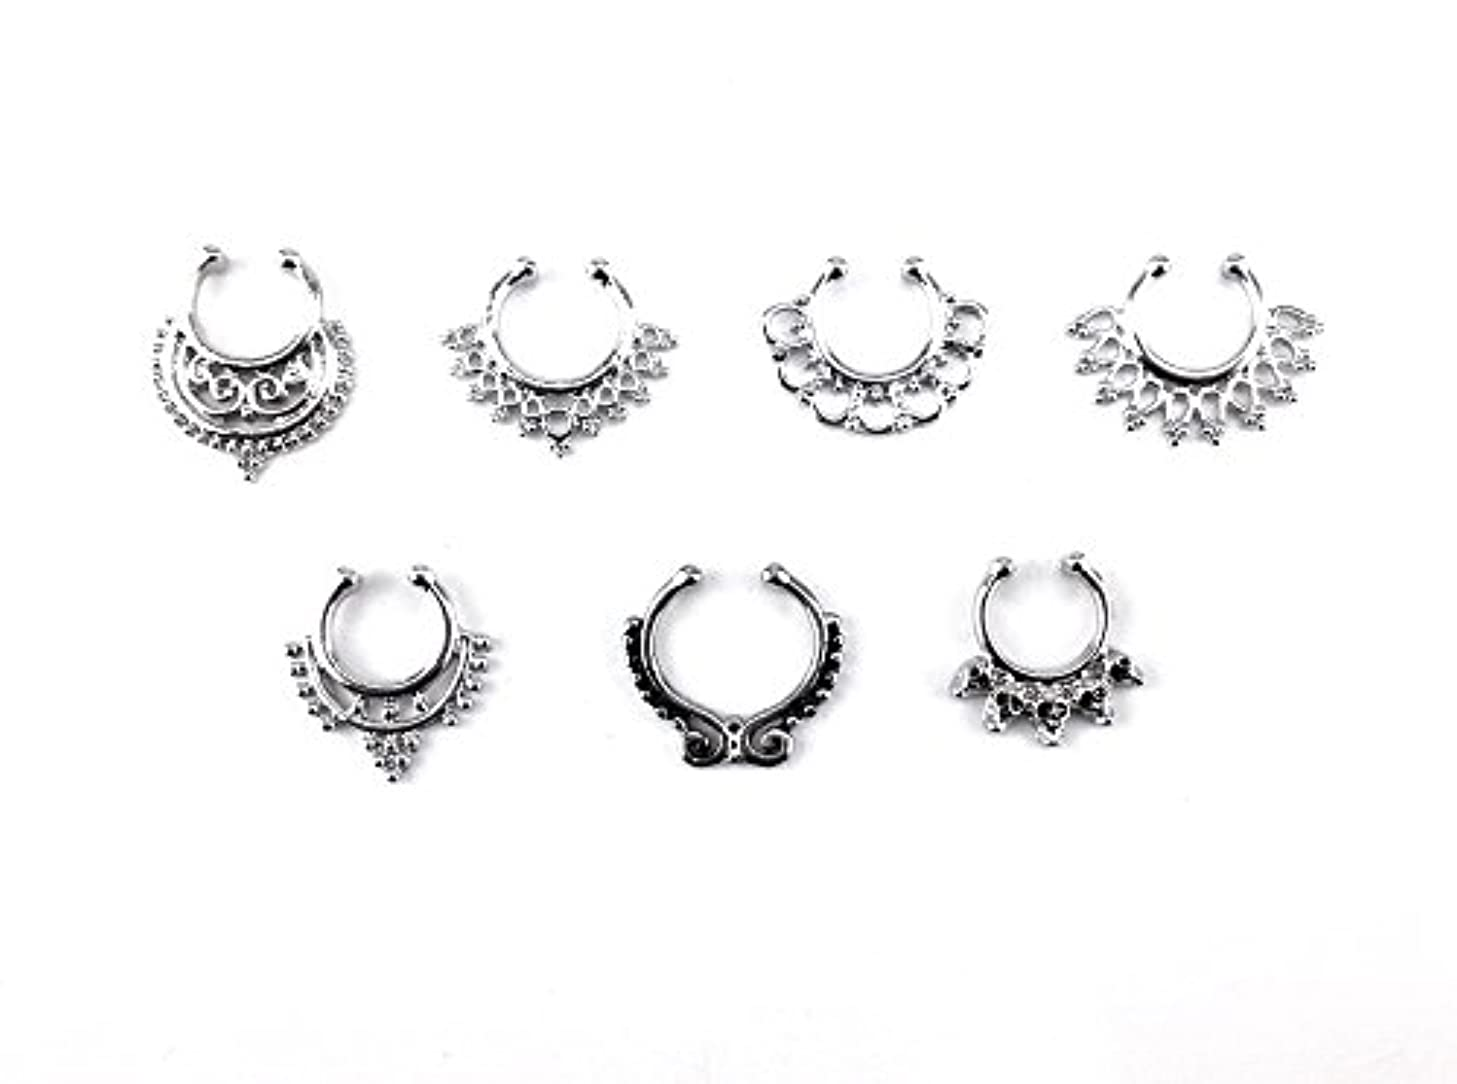 Honbay 7pcs Mix Style Silver Fake Septum Clicker Nose Ring Non Piercing Hanger Clip Body Jewelry